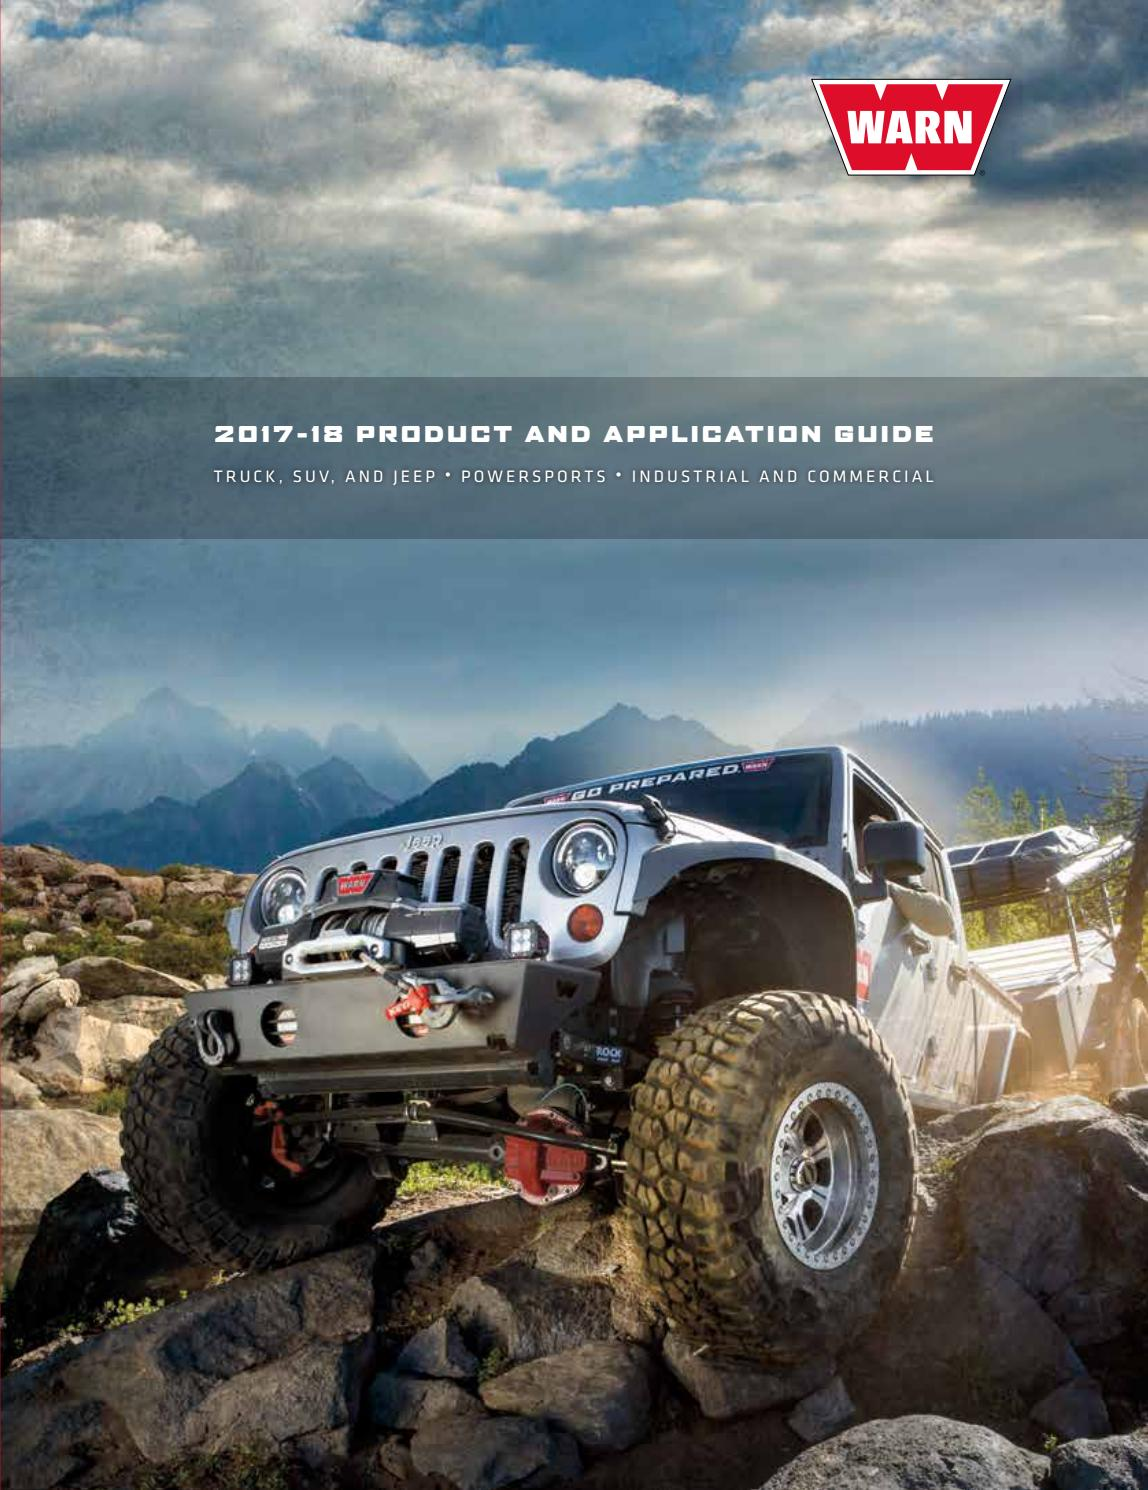 Warn 2017 productguide by N.E. Ringsted ApS - issuu Warn Winch Wiring Diagram on